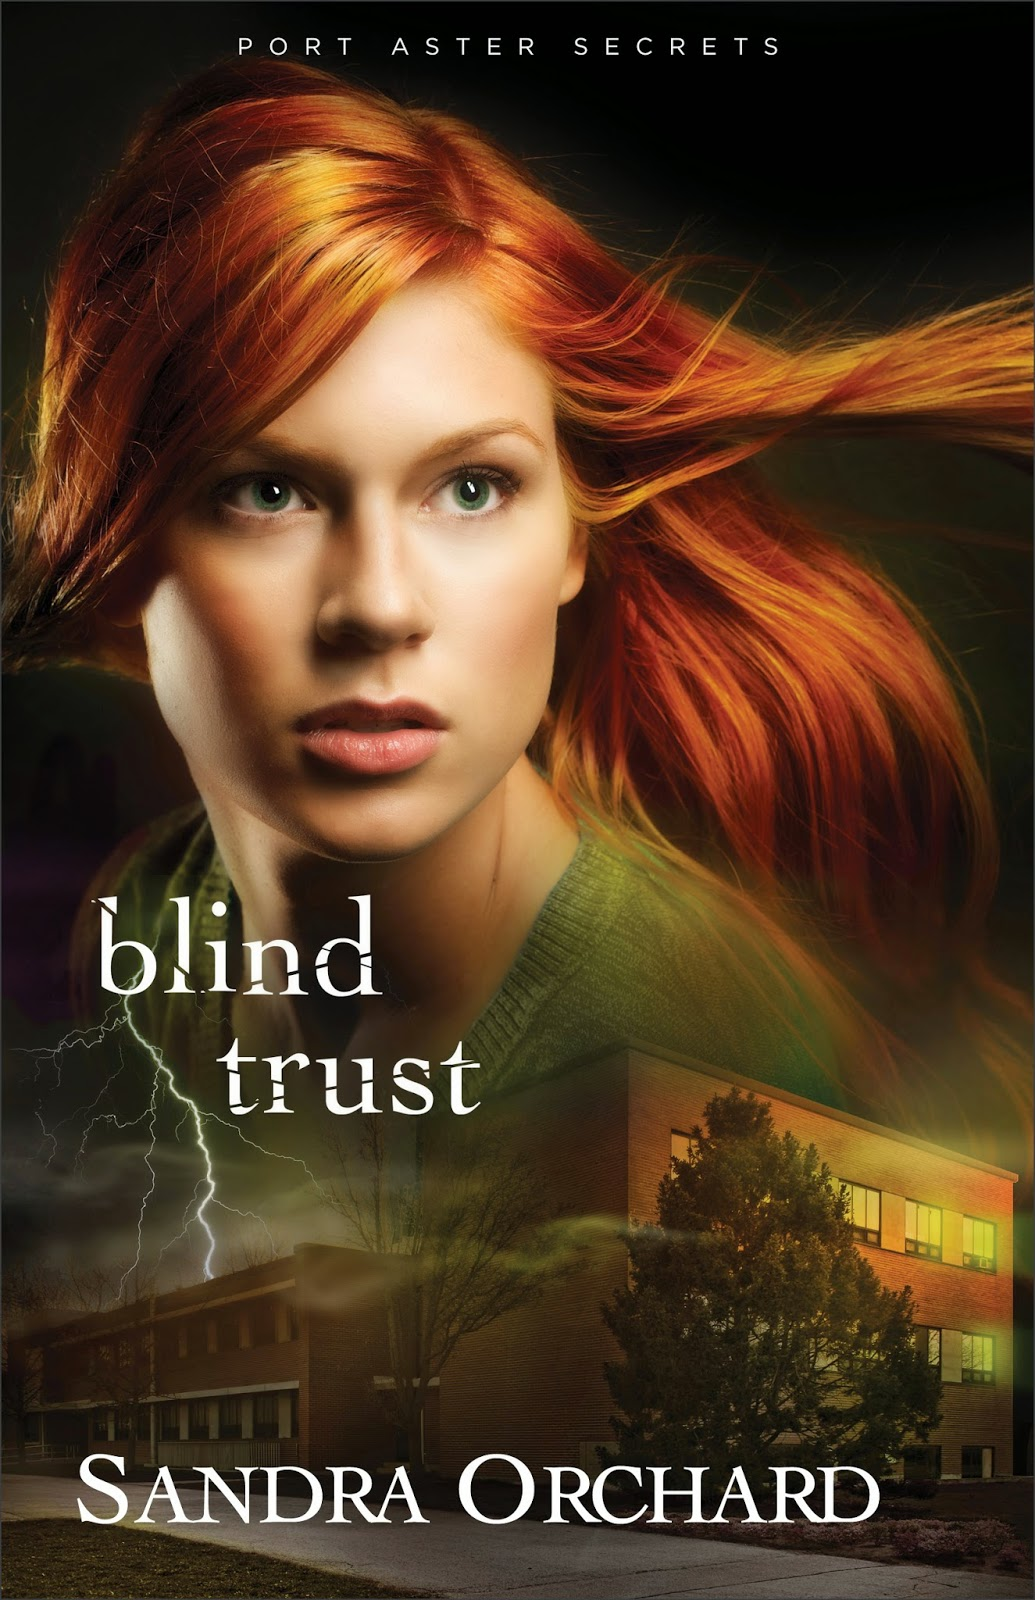 book review of Blind Trust by Sandra Orchard (Revell) by papertapepins